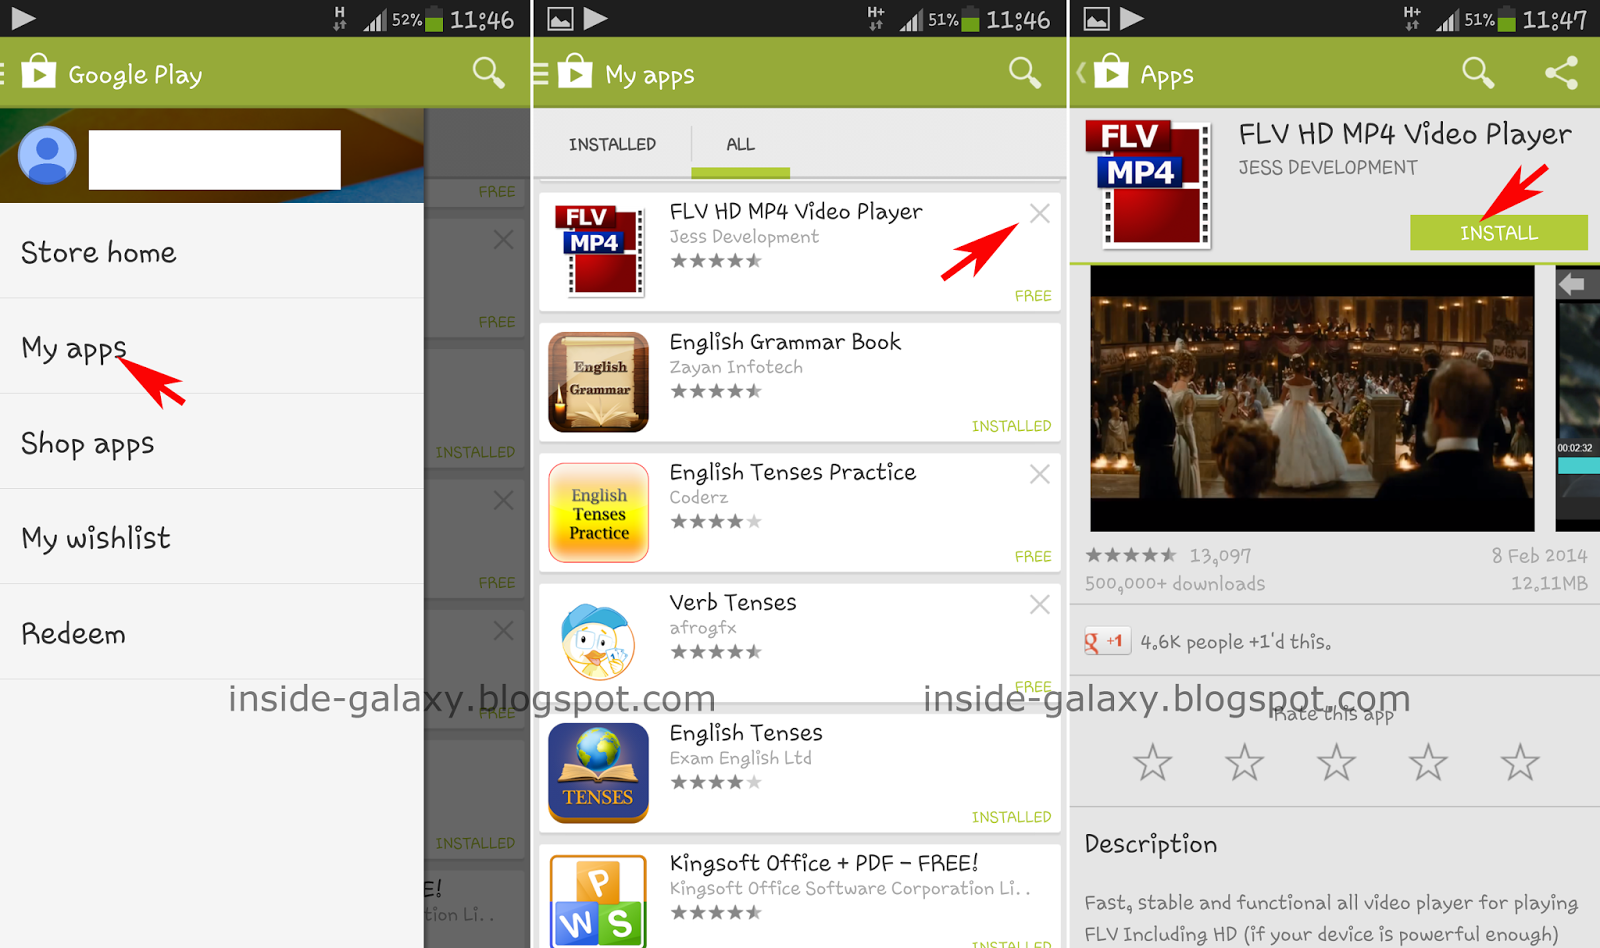 Samsung Galaxy S4: How to Reinstall Apps